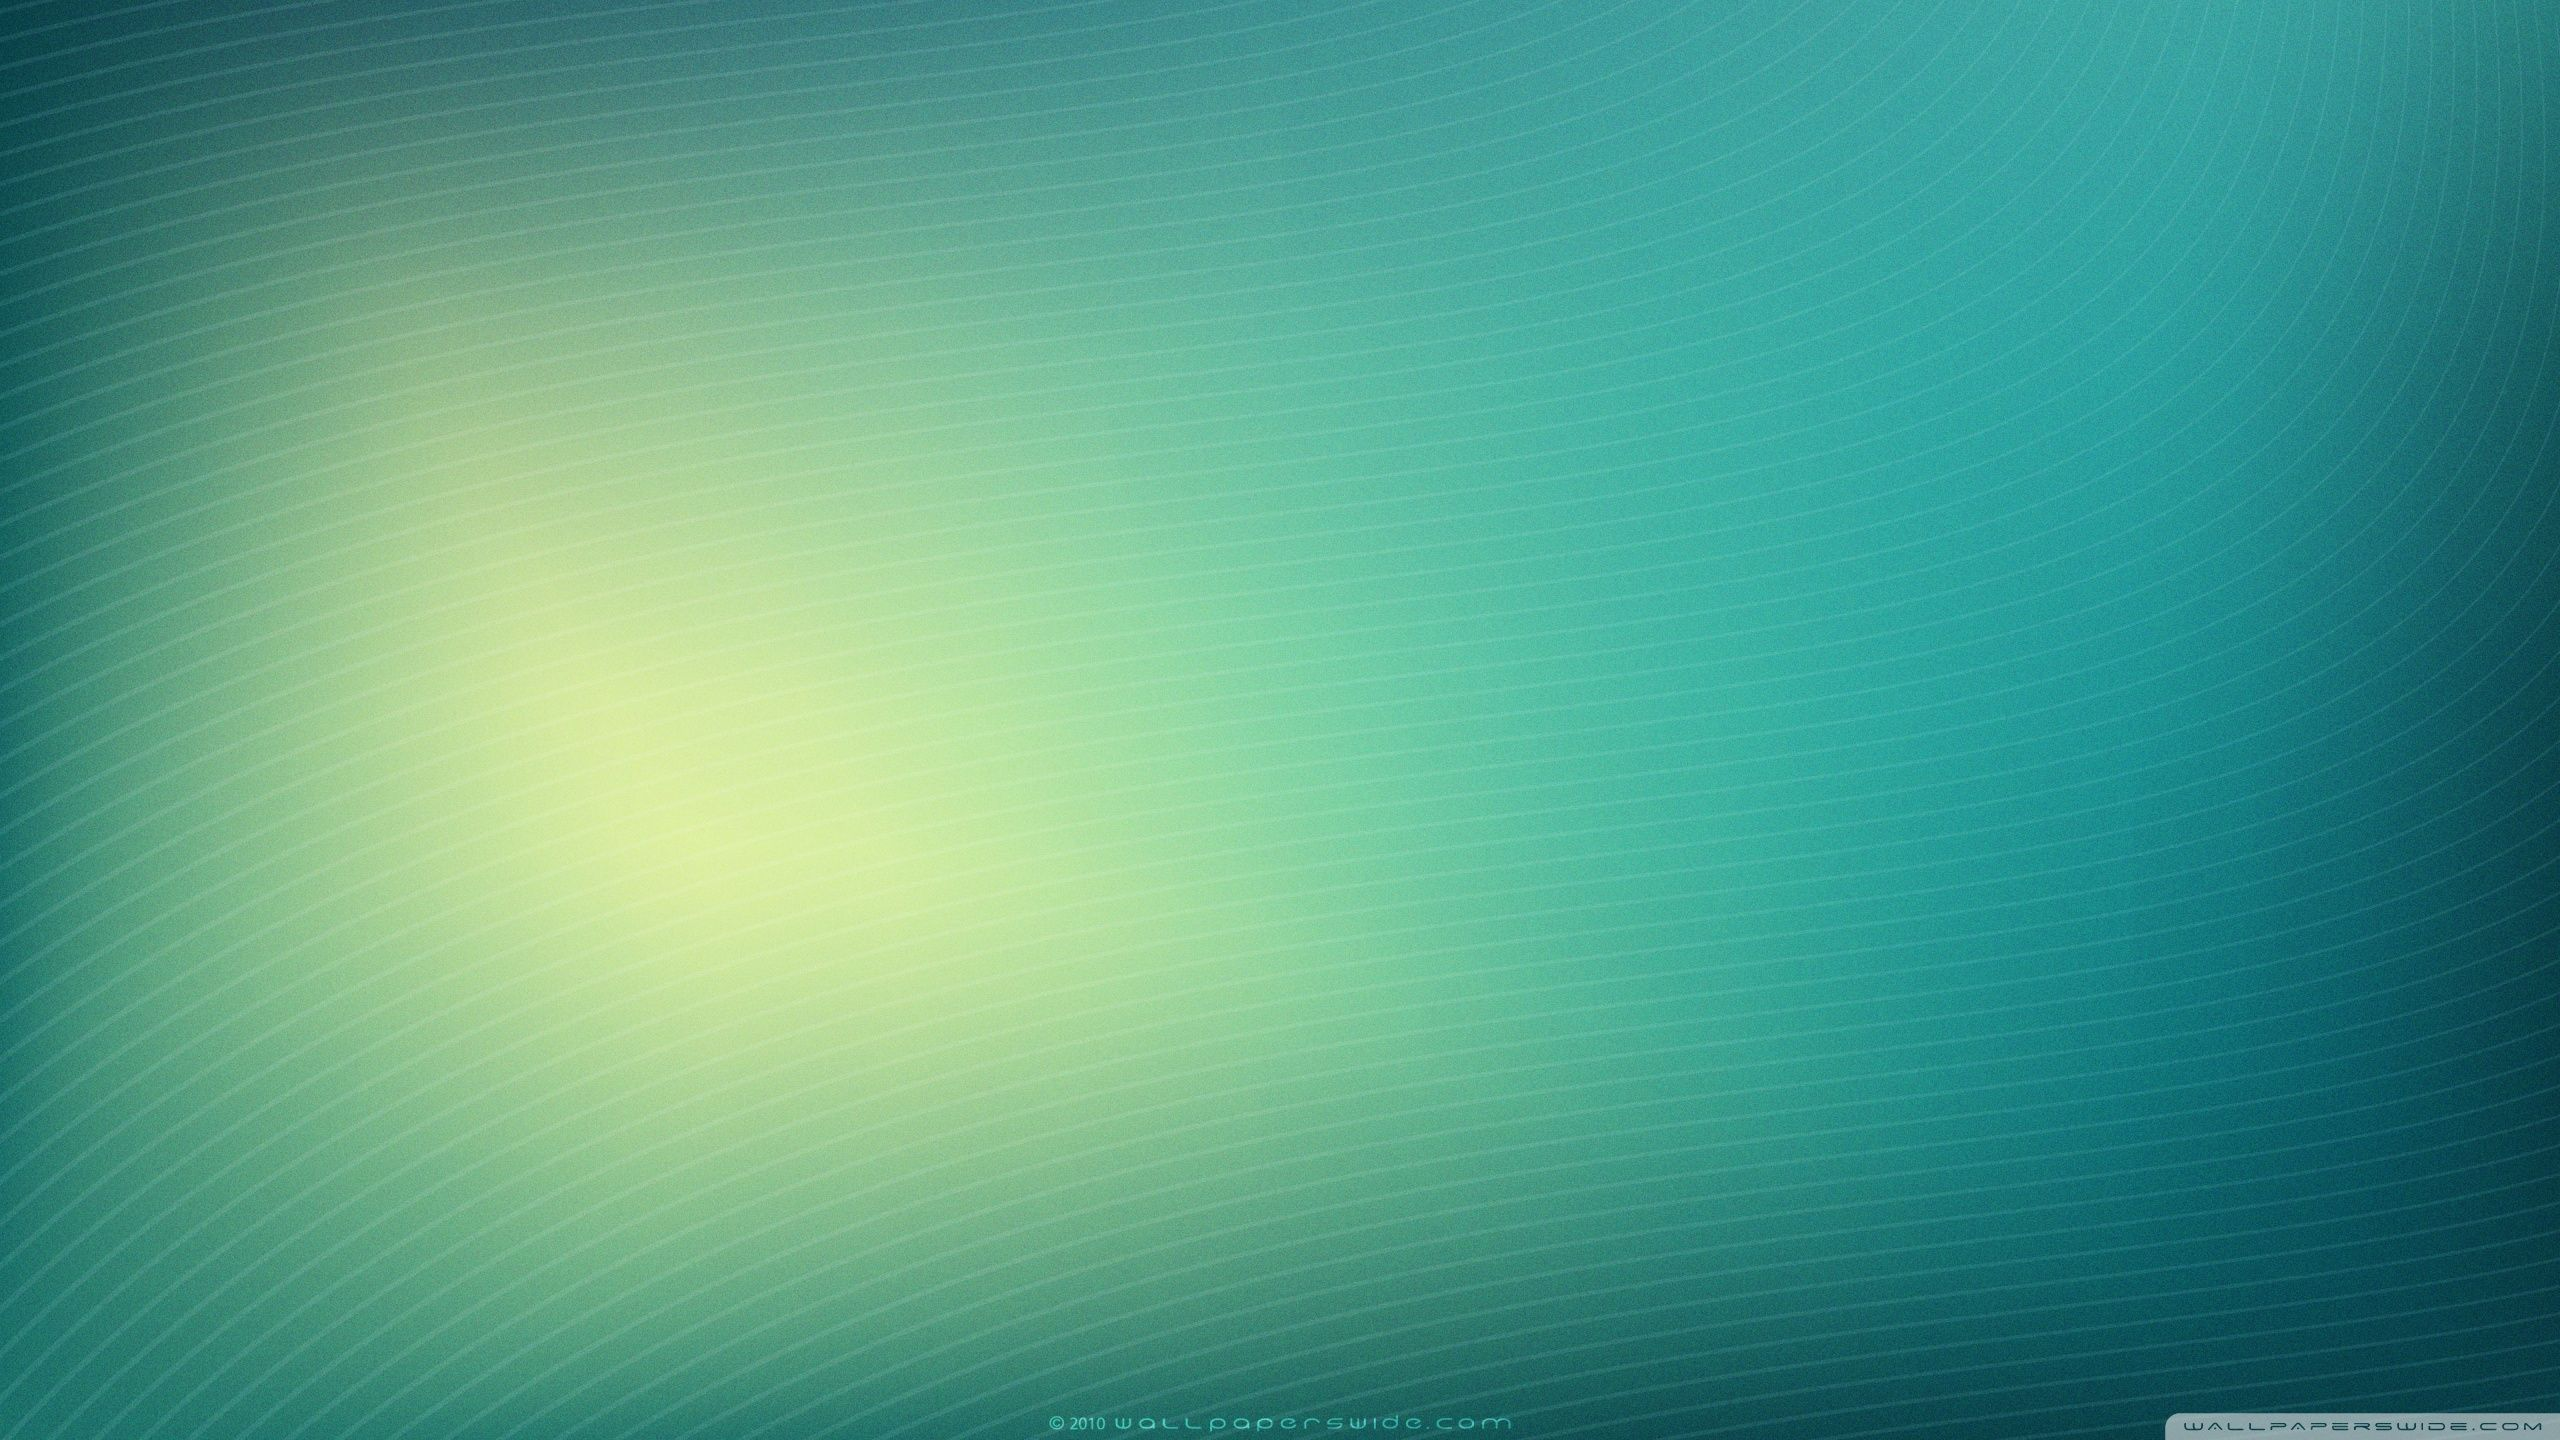 Teal Abstract Wallpapers Top Free Teal Abstract